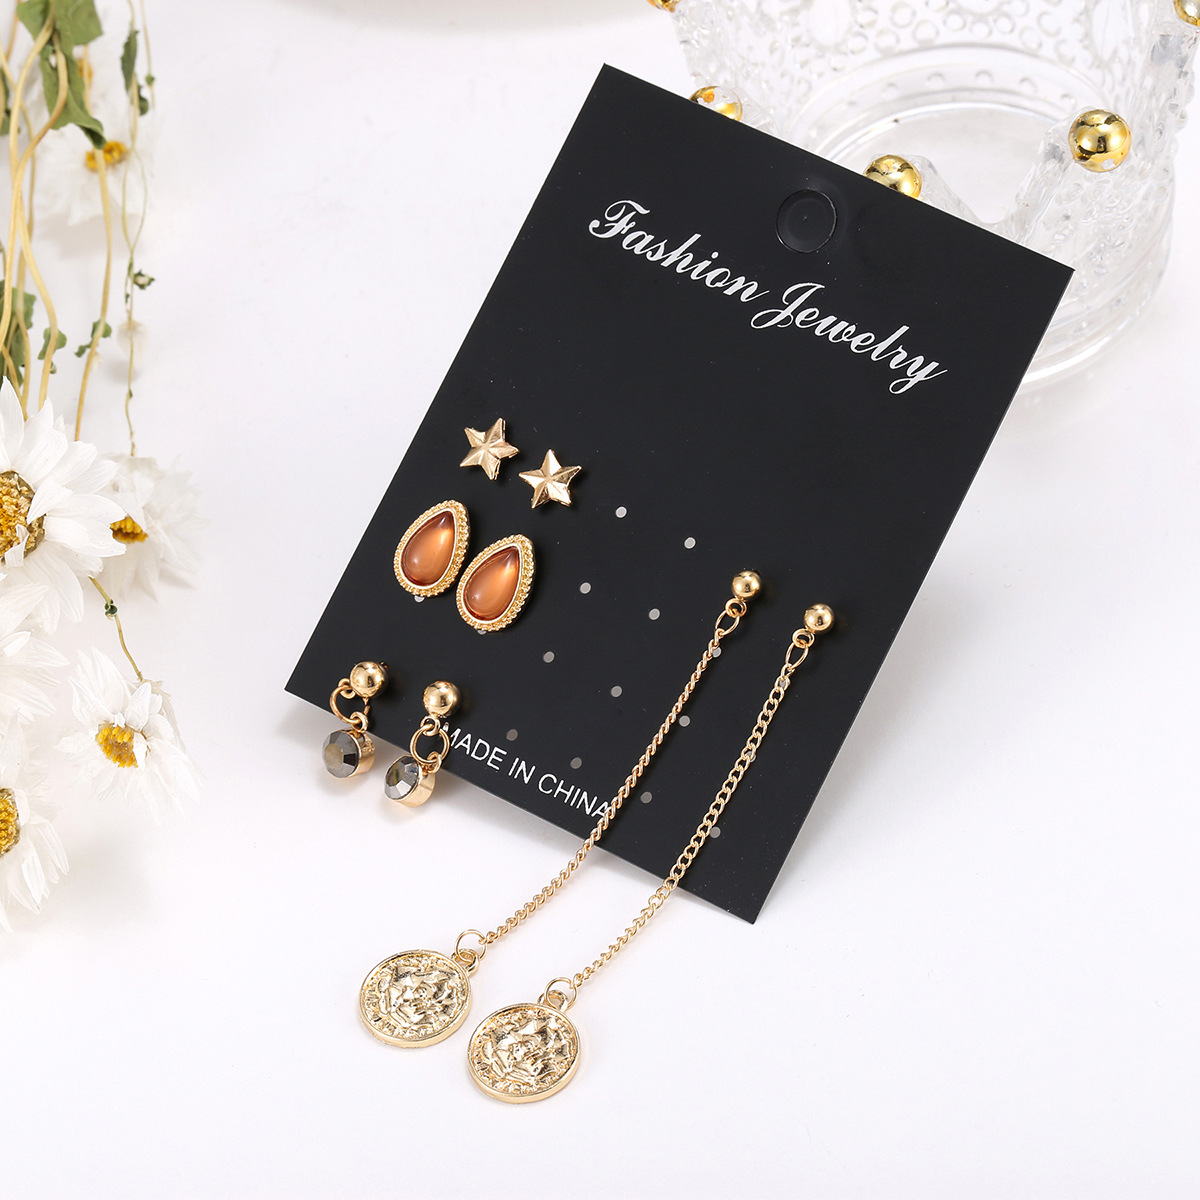 jewelry earrings new bohemian black diamond long retro star 4 pairs of earrings set combination wholesale nihaojewelry NHSD229224